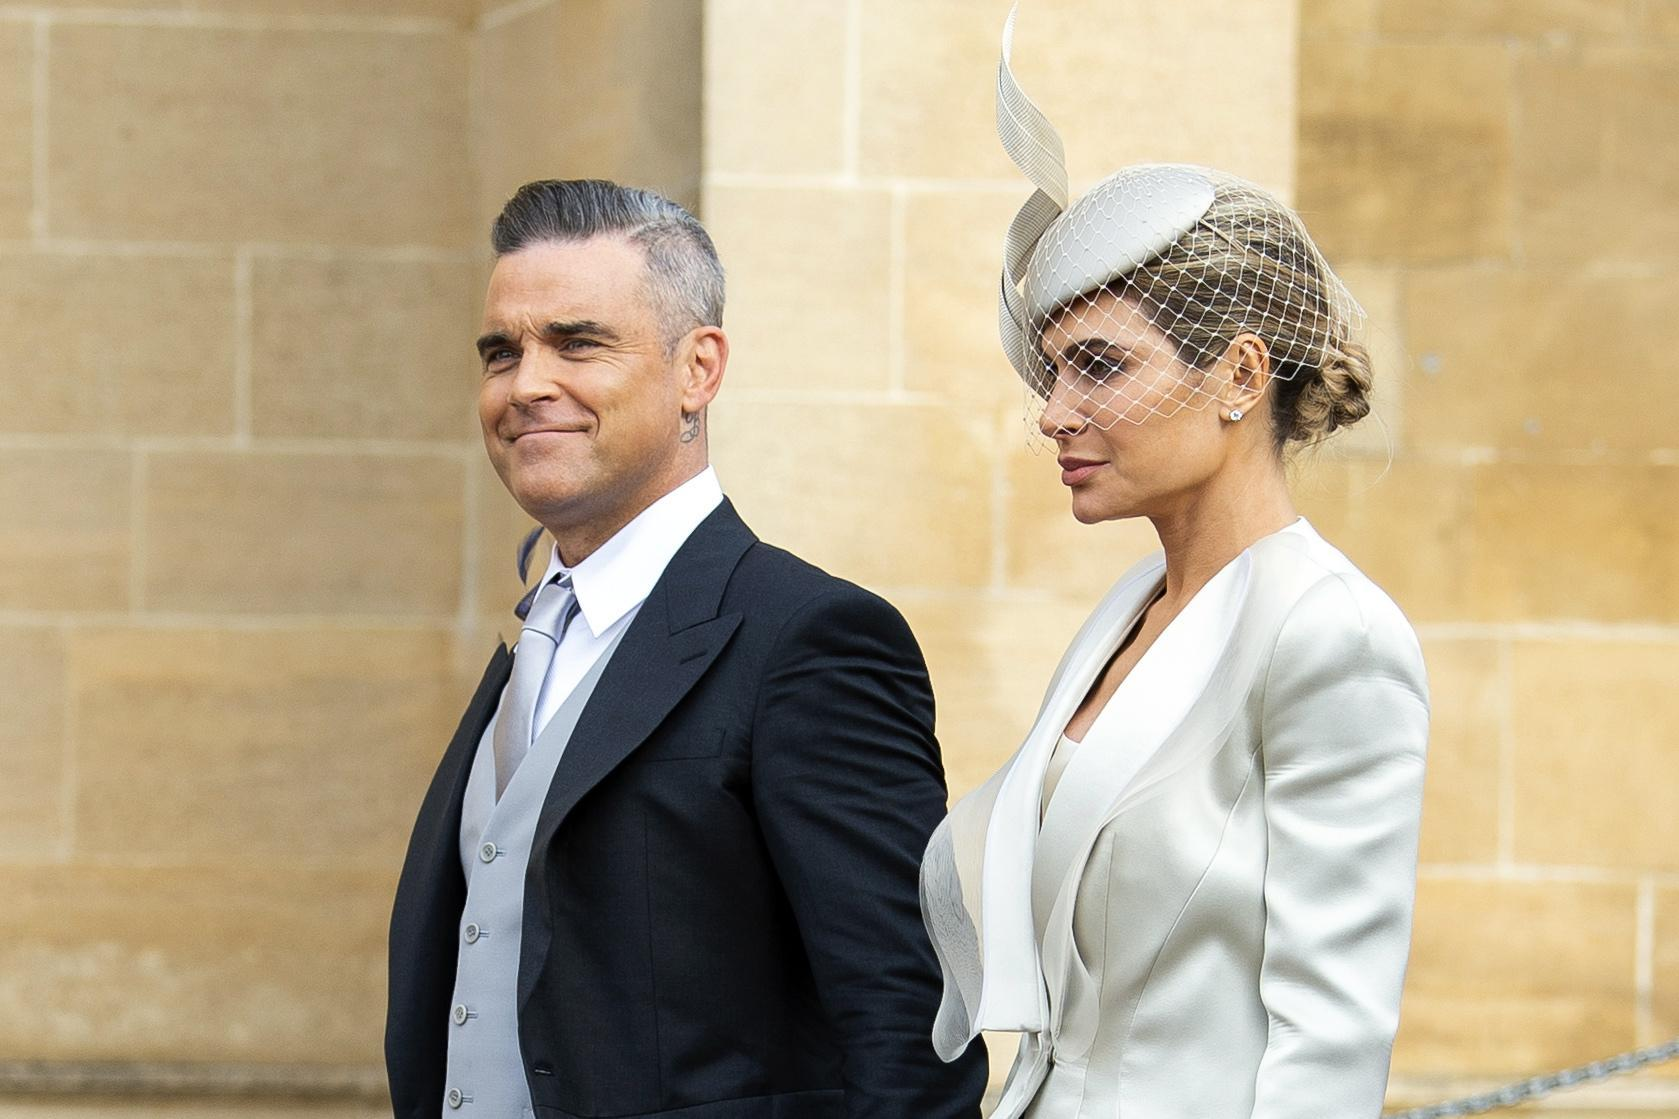 Robbie Williams e la moglie Ayda Field al matrimonio della Princessa Eugenie con Jack Brooksbank